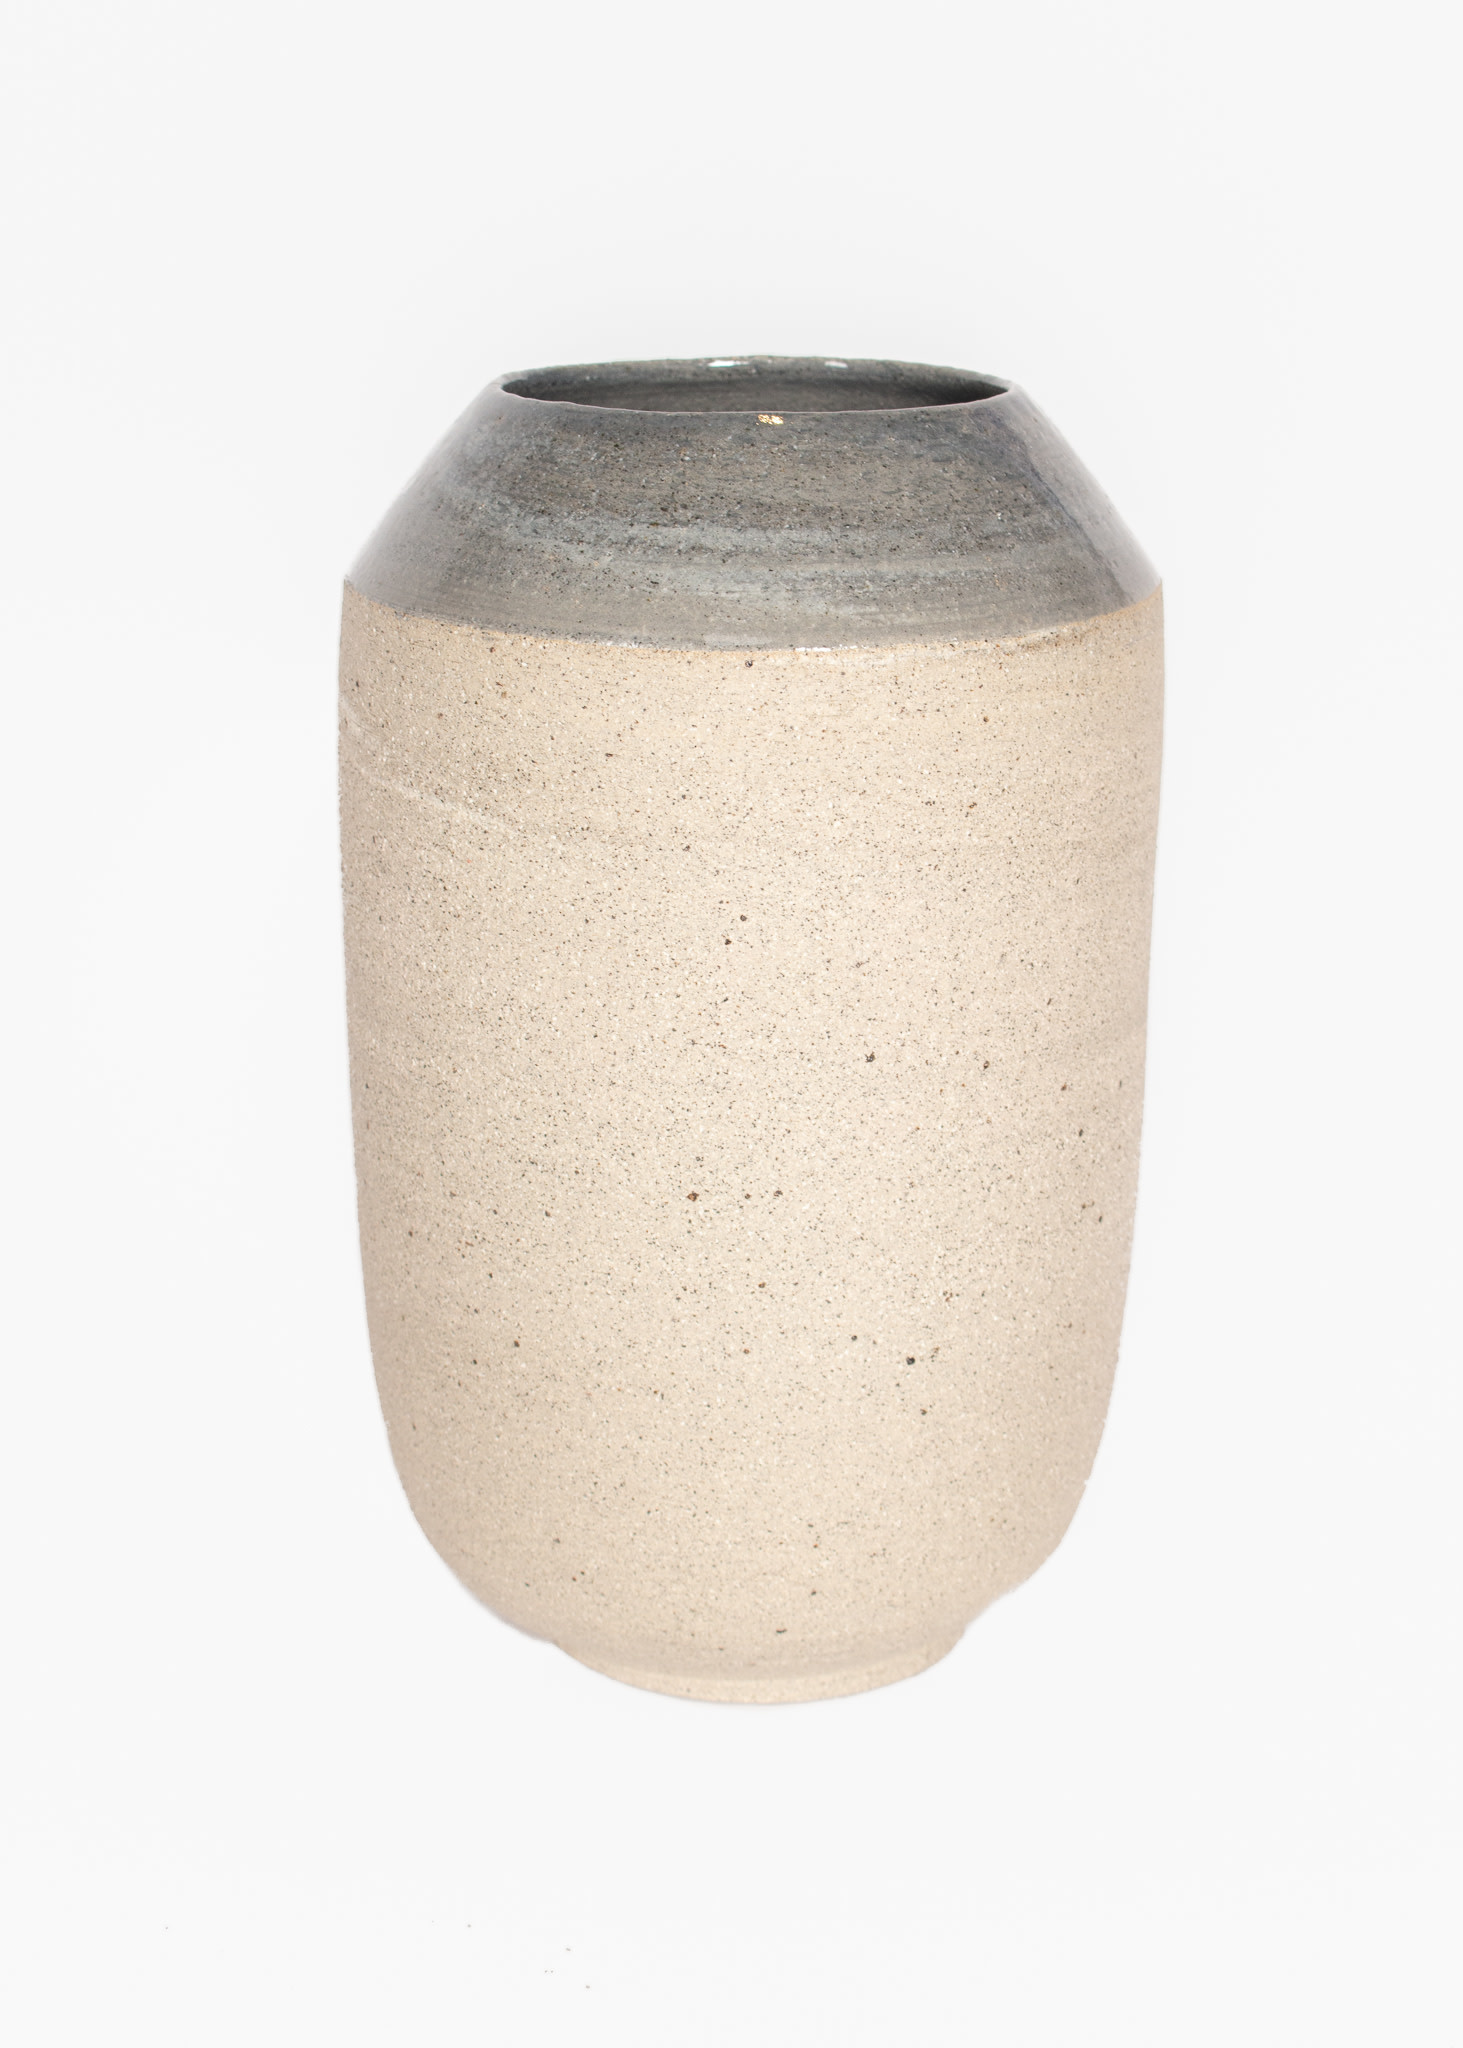 Tasjap Big vase with grey top